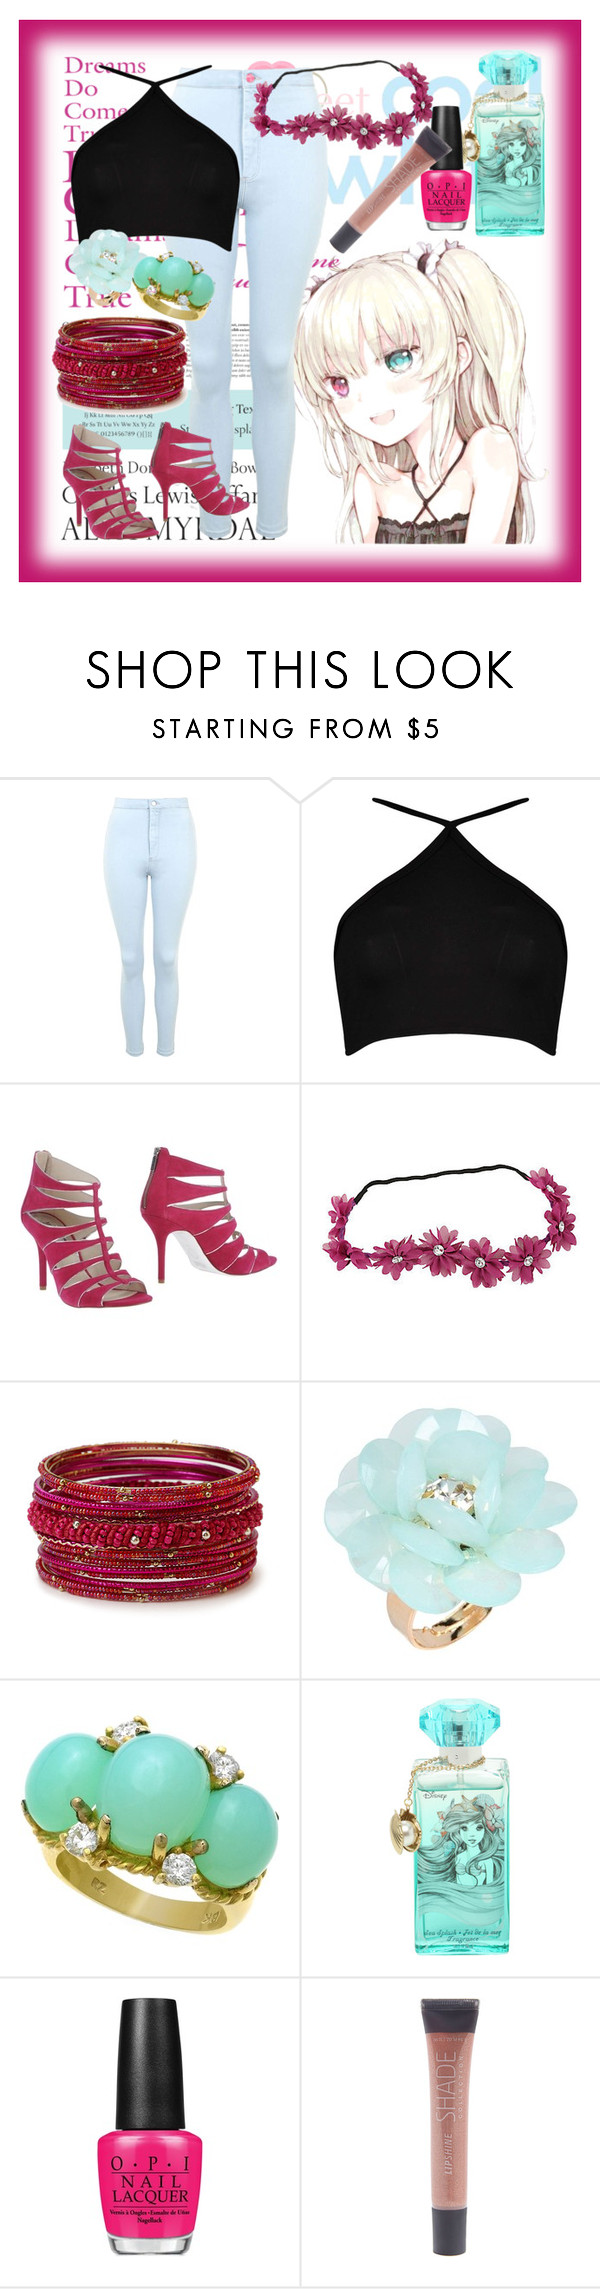 """Anime"" by deedee-pekarikhihiha ❤ liked on Polyvore featuring moda, Tiffany & Co., Topshop, Boohoo, MICHAEL Michael Kors, Forever 21, Dettagli, Disney, OPI y Lane Bryant"